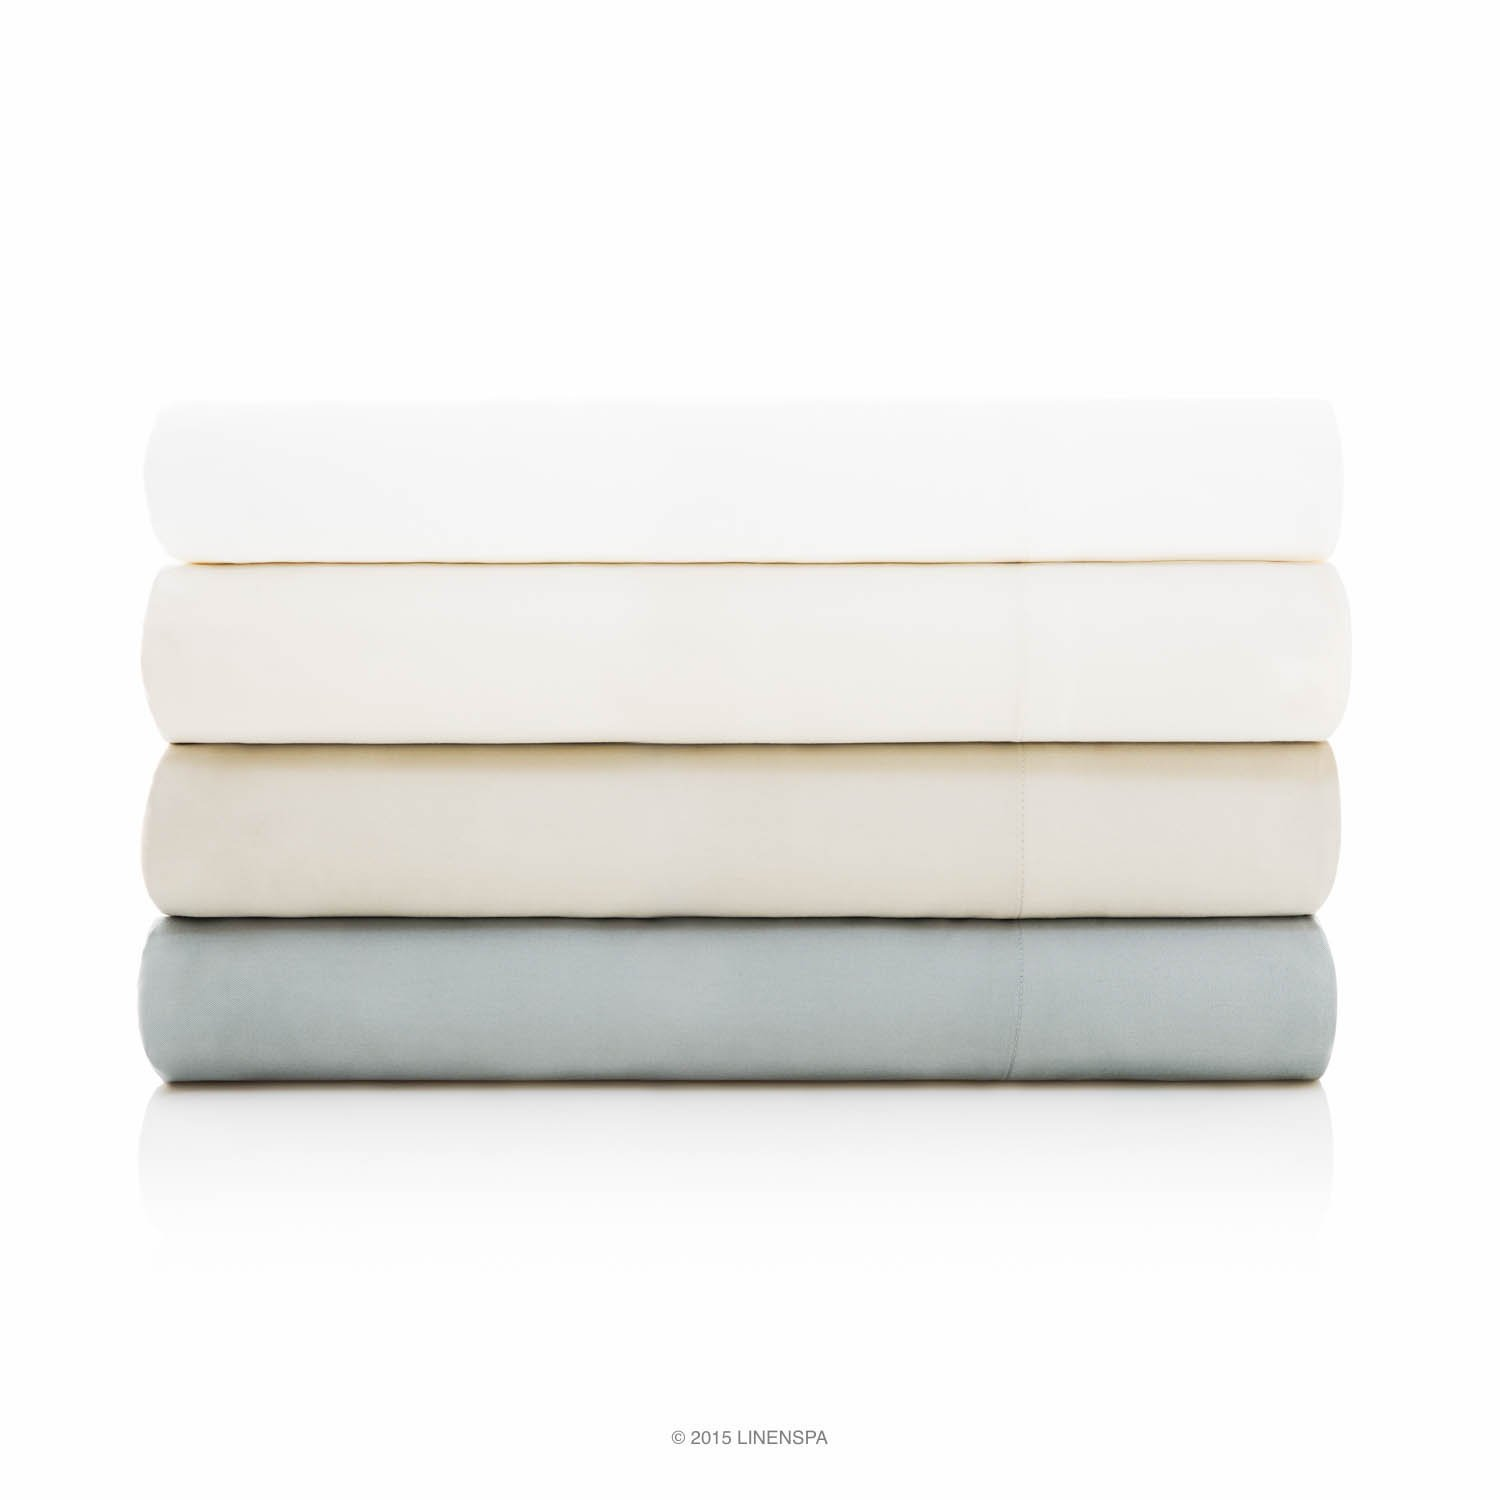 Linen Spa Ultra Soft Luxury 100% Rayon From Bamboo Sheet Set